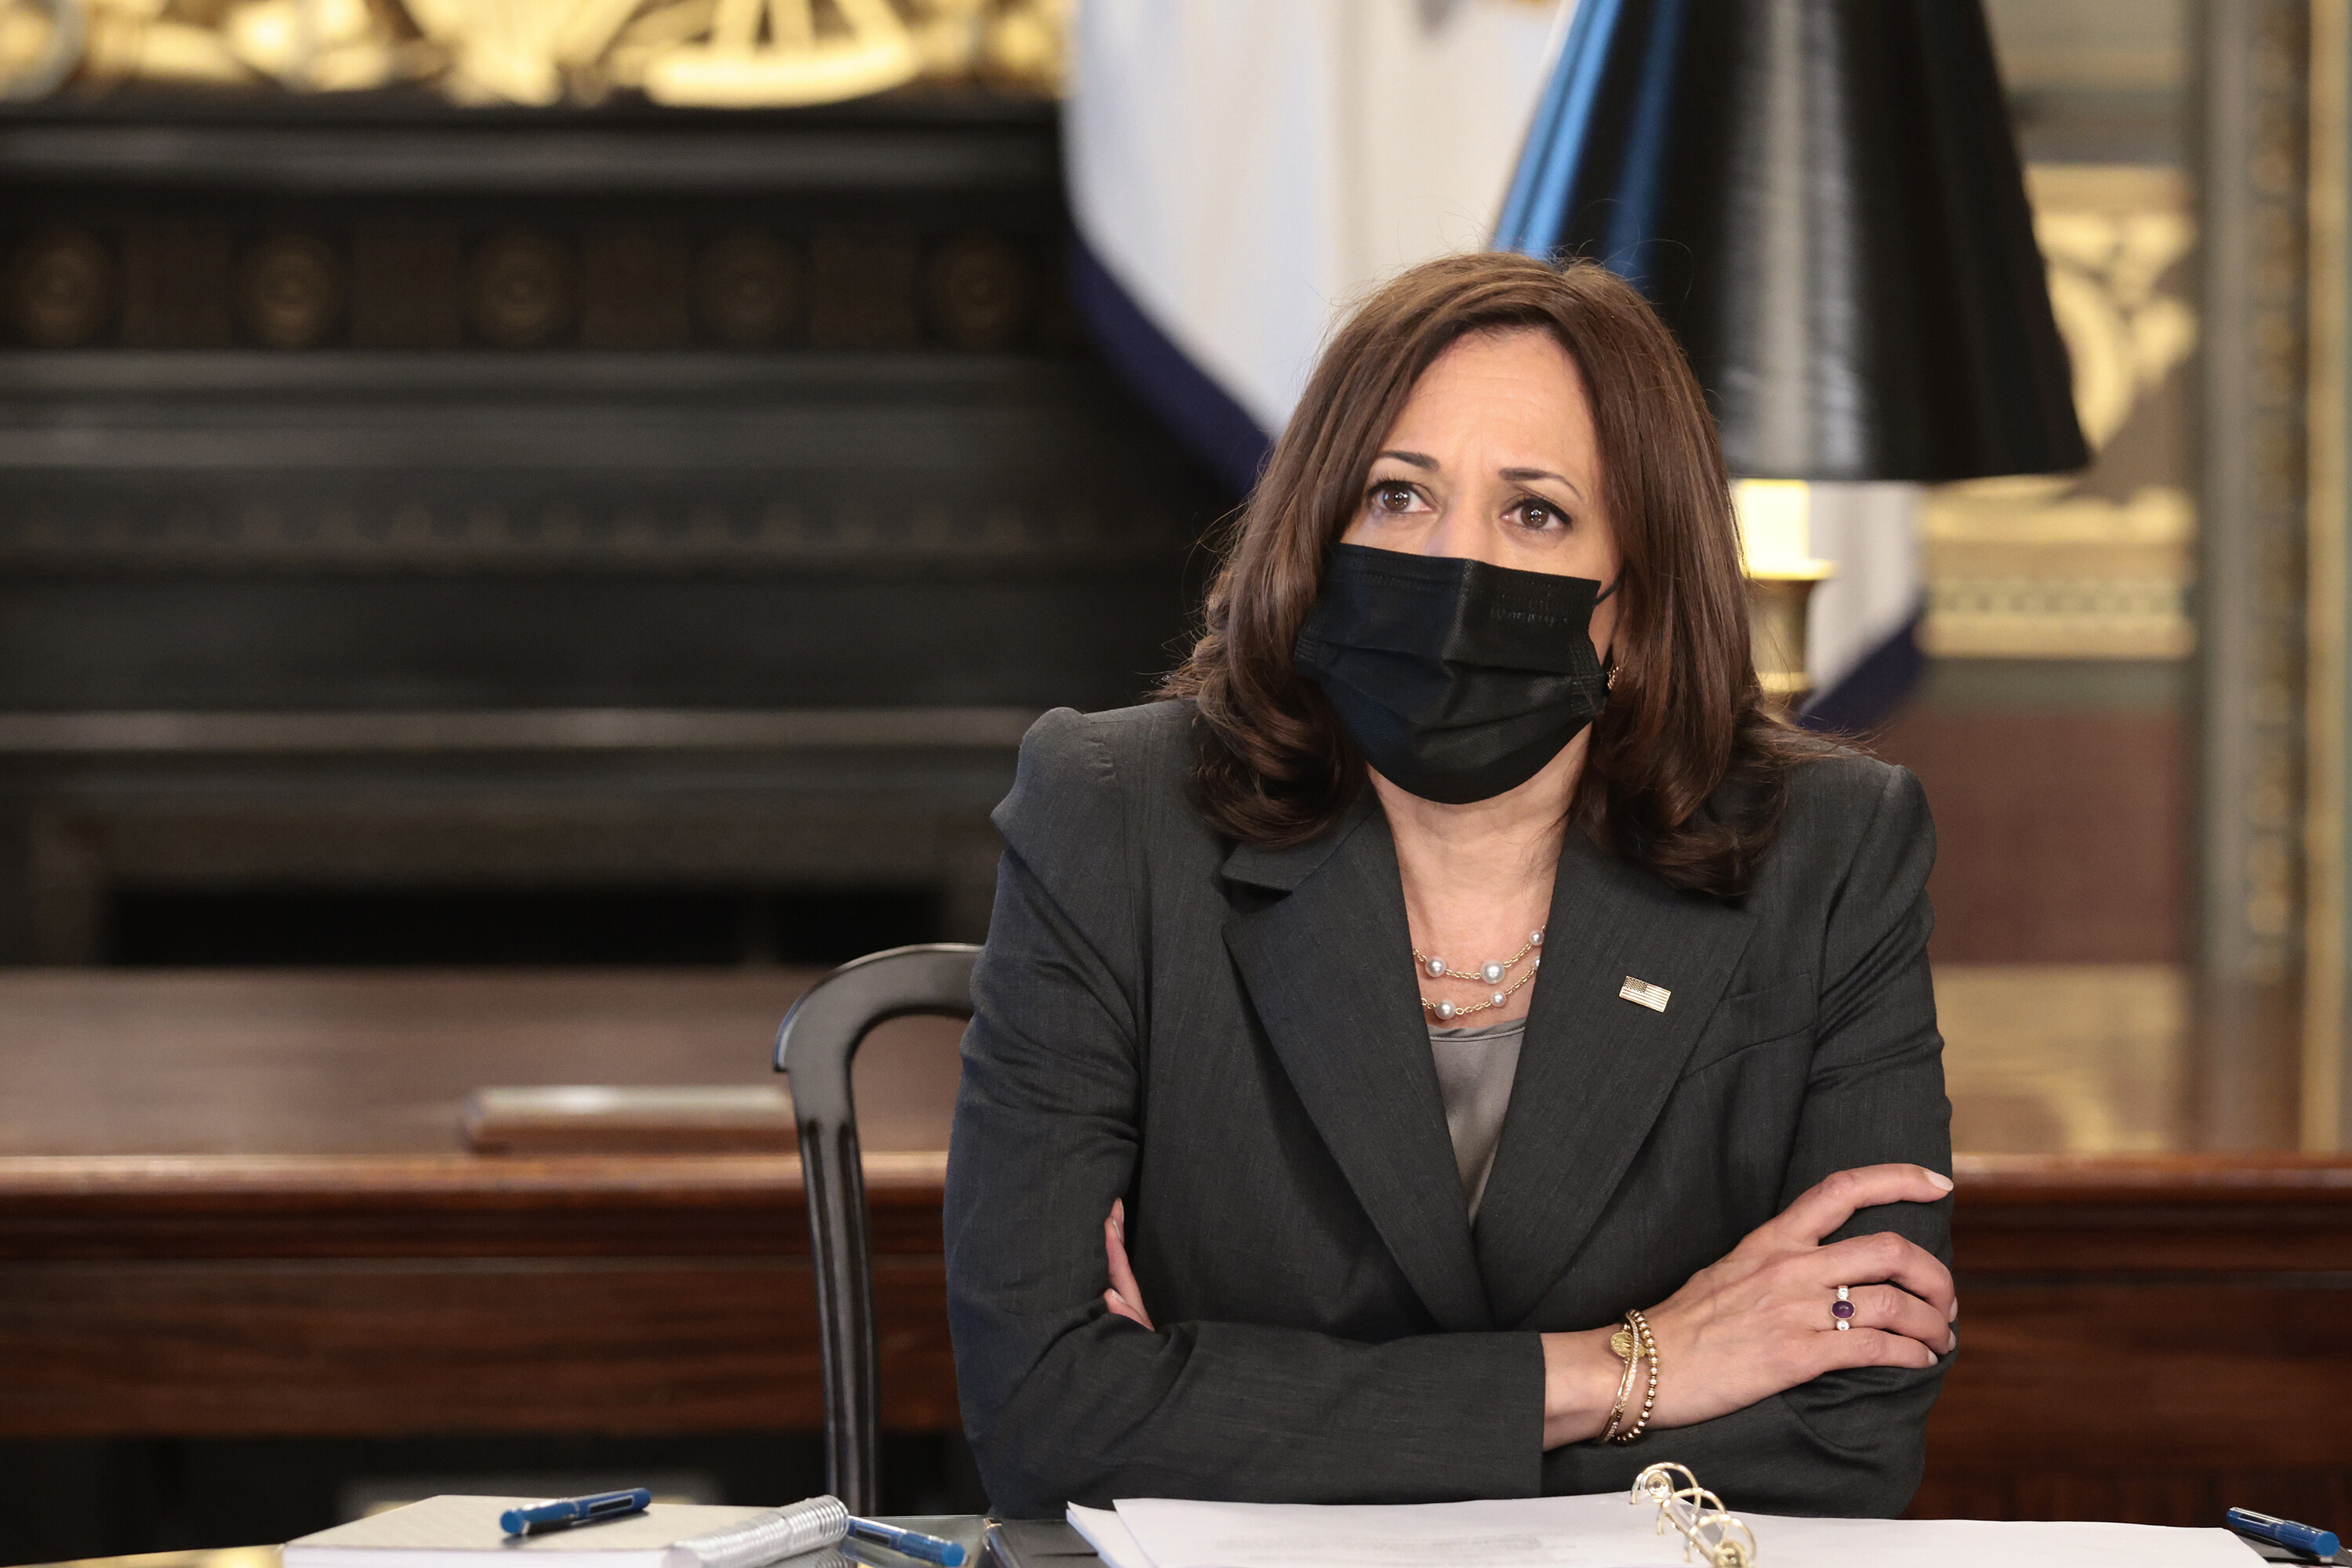 Kamala Harris' office frustrated with 'The View' after last week's Covid fiasco, sources say